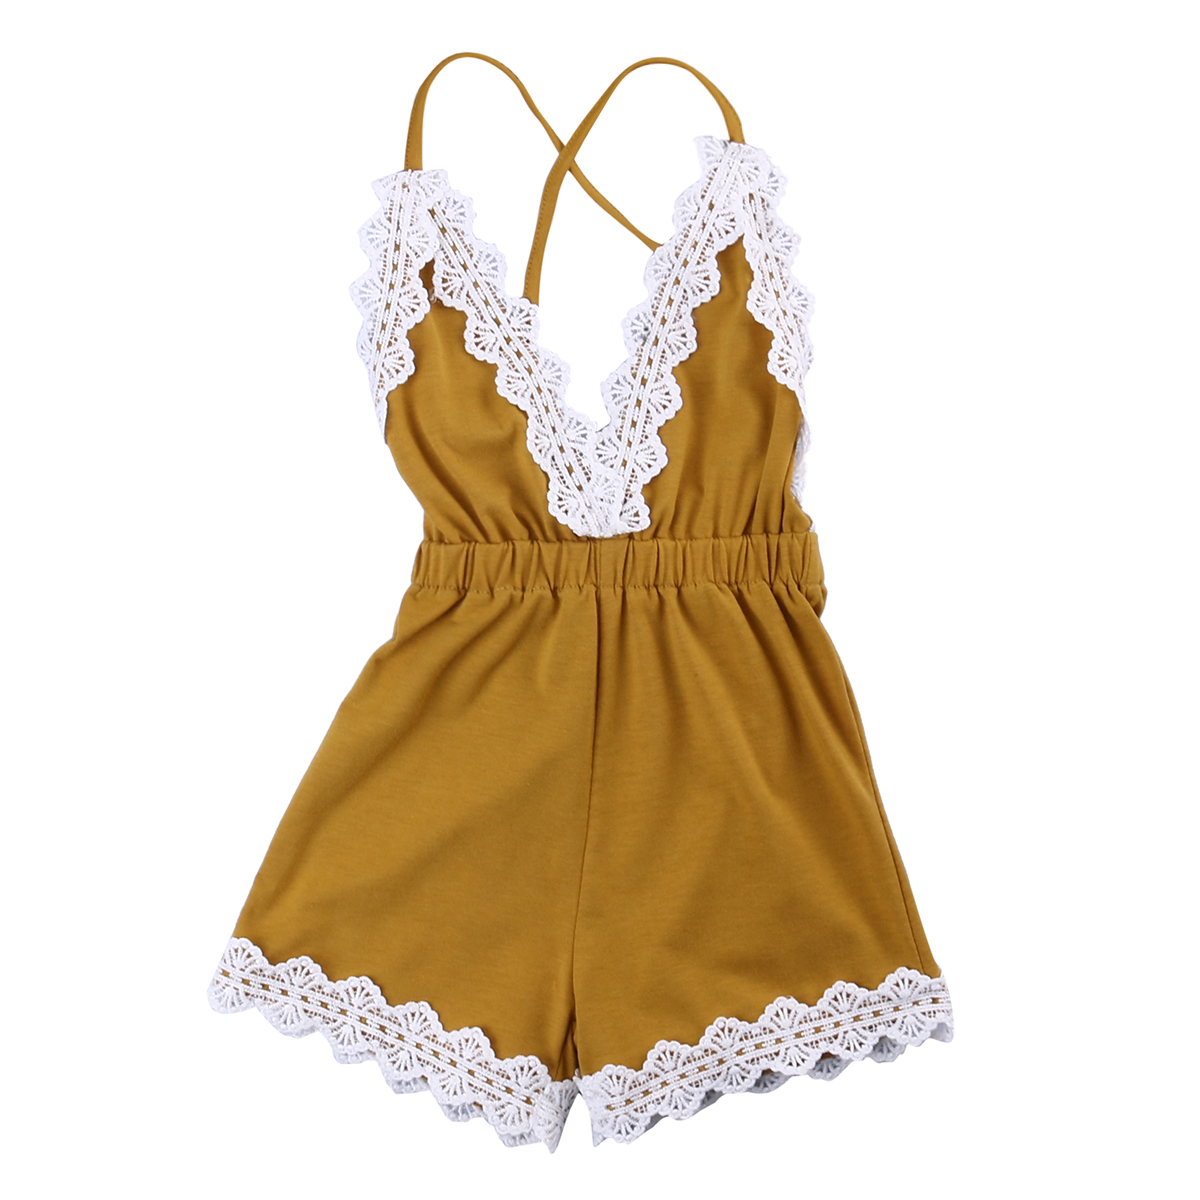 8564b582e36 Newborn Adorable Baby Girls Infant Lace Sleeveless Romper V-Neck Backless Jumpsuit  Clothes Outfit Sunsuit Set